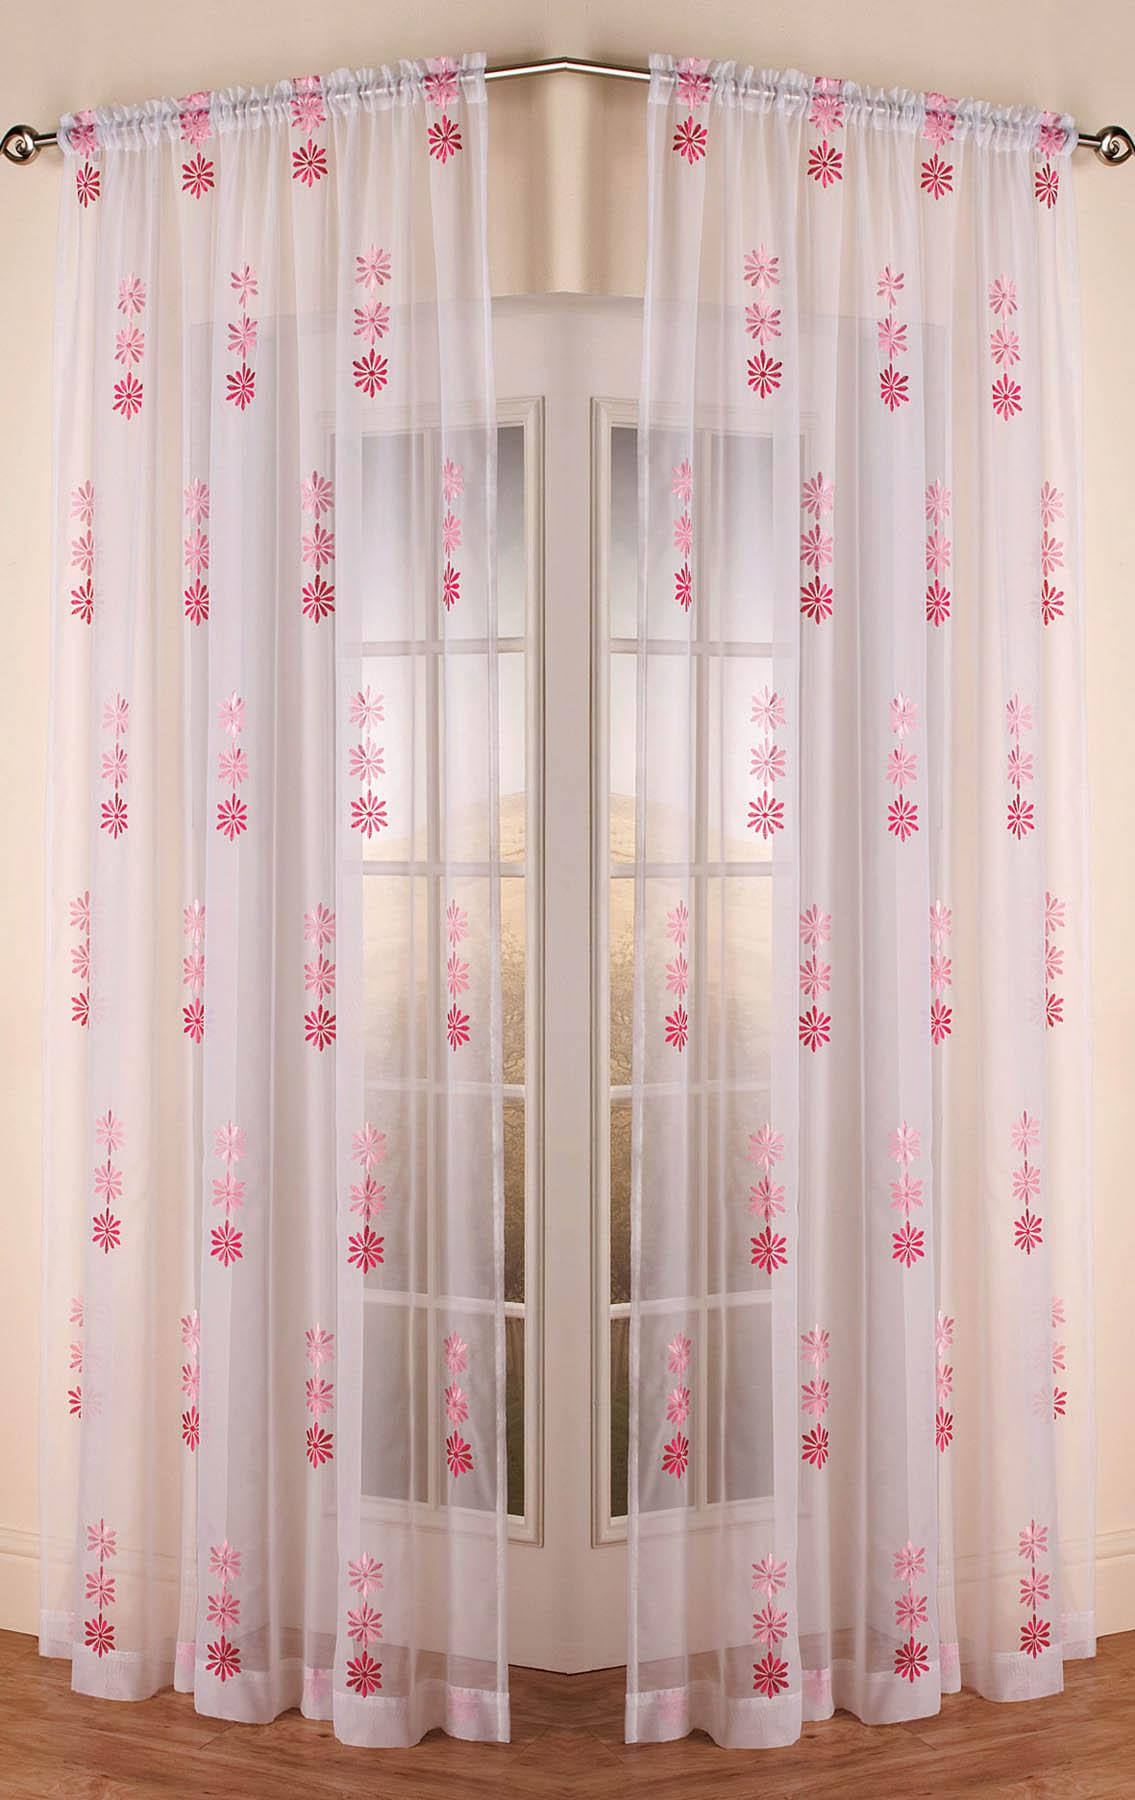 Peach Drapes | Embroidered Curtains | Macrame Drapes